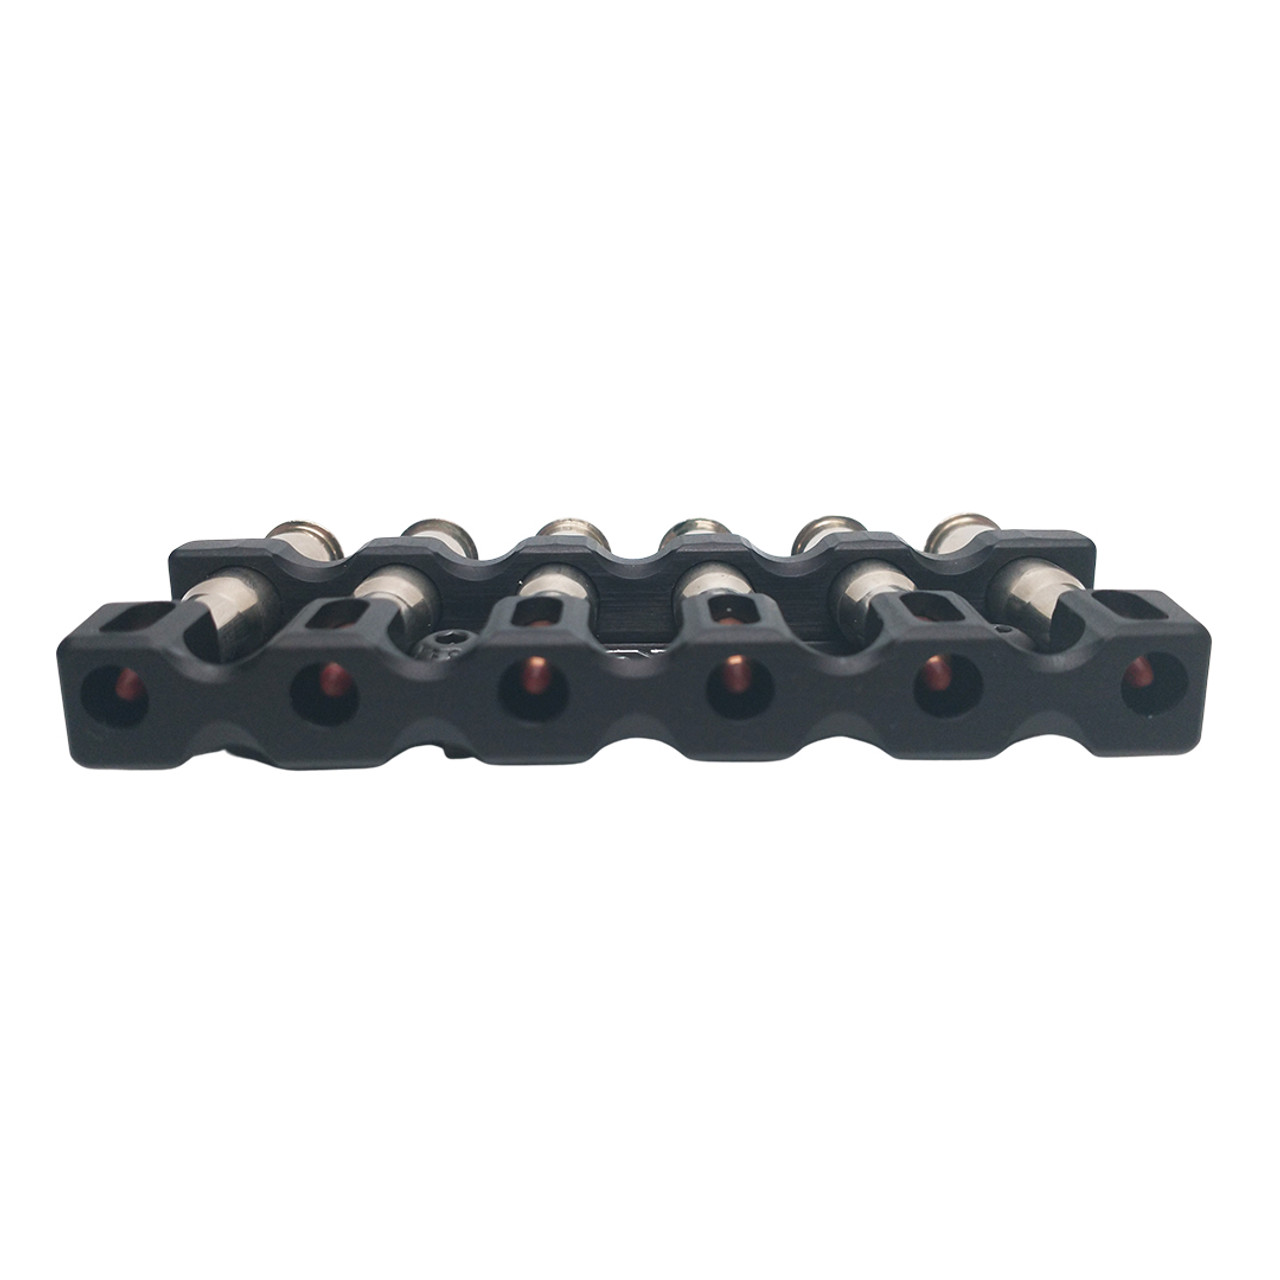 Ranger Point Precision M-LOK 30-30 Win Cartridge Quiver holds six cartridges to complement our popular M-LOK forearm rails for Marlin, Henry, and Rossi lever-action rifles (will also work with any M-LOK rail on the market).